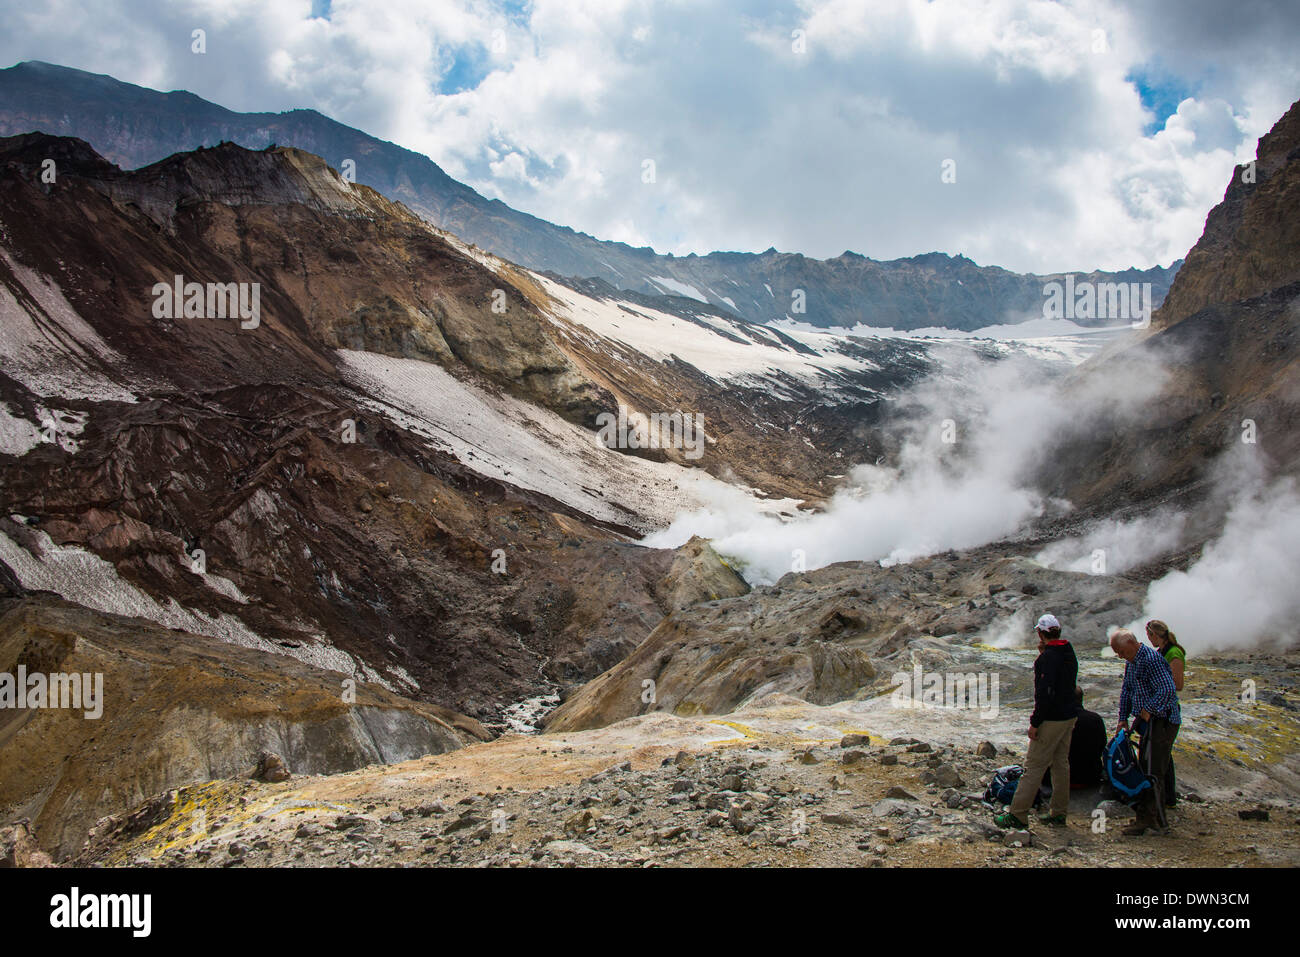 Tourists standing by smoking fumaroles on Mutnovsky volcano, Kamchatka, Russia, Eurasia Stock Photo